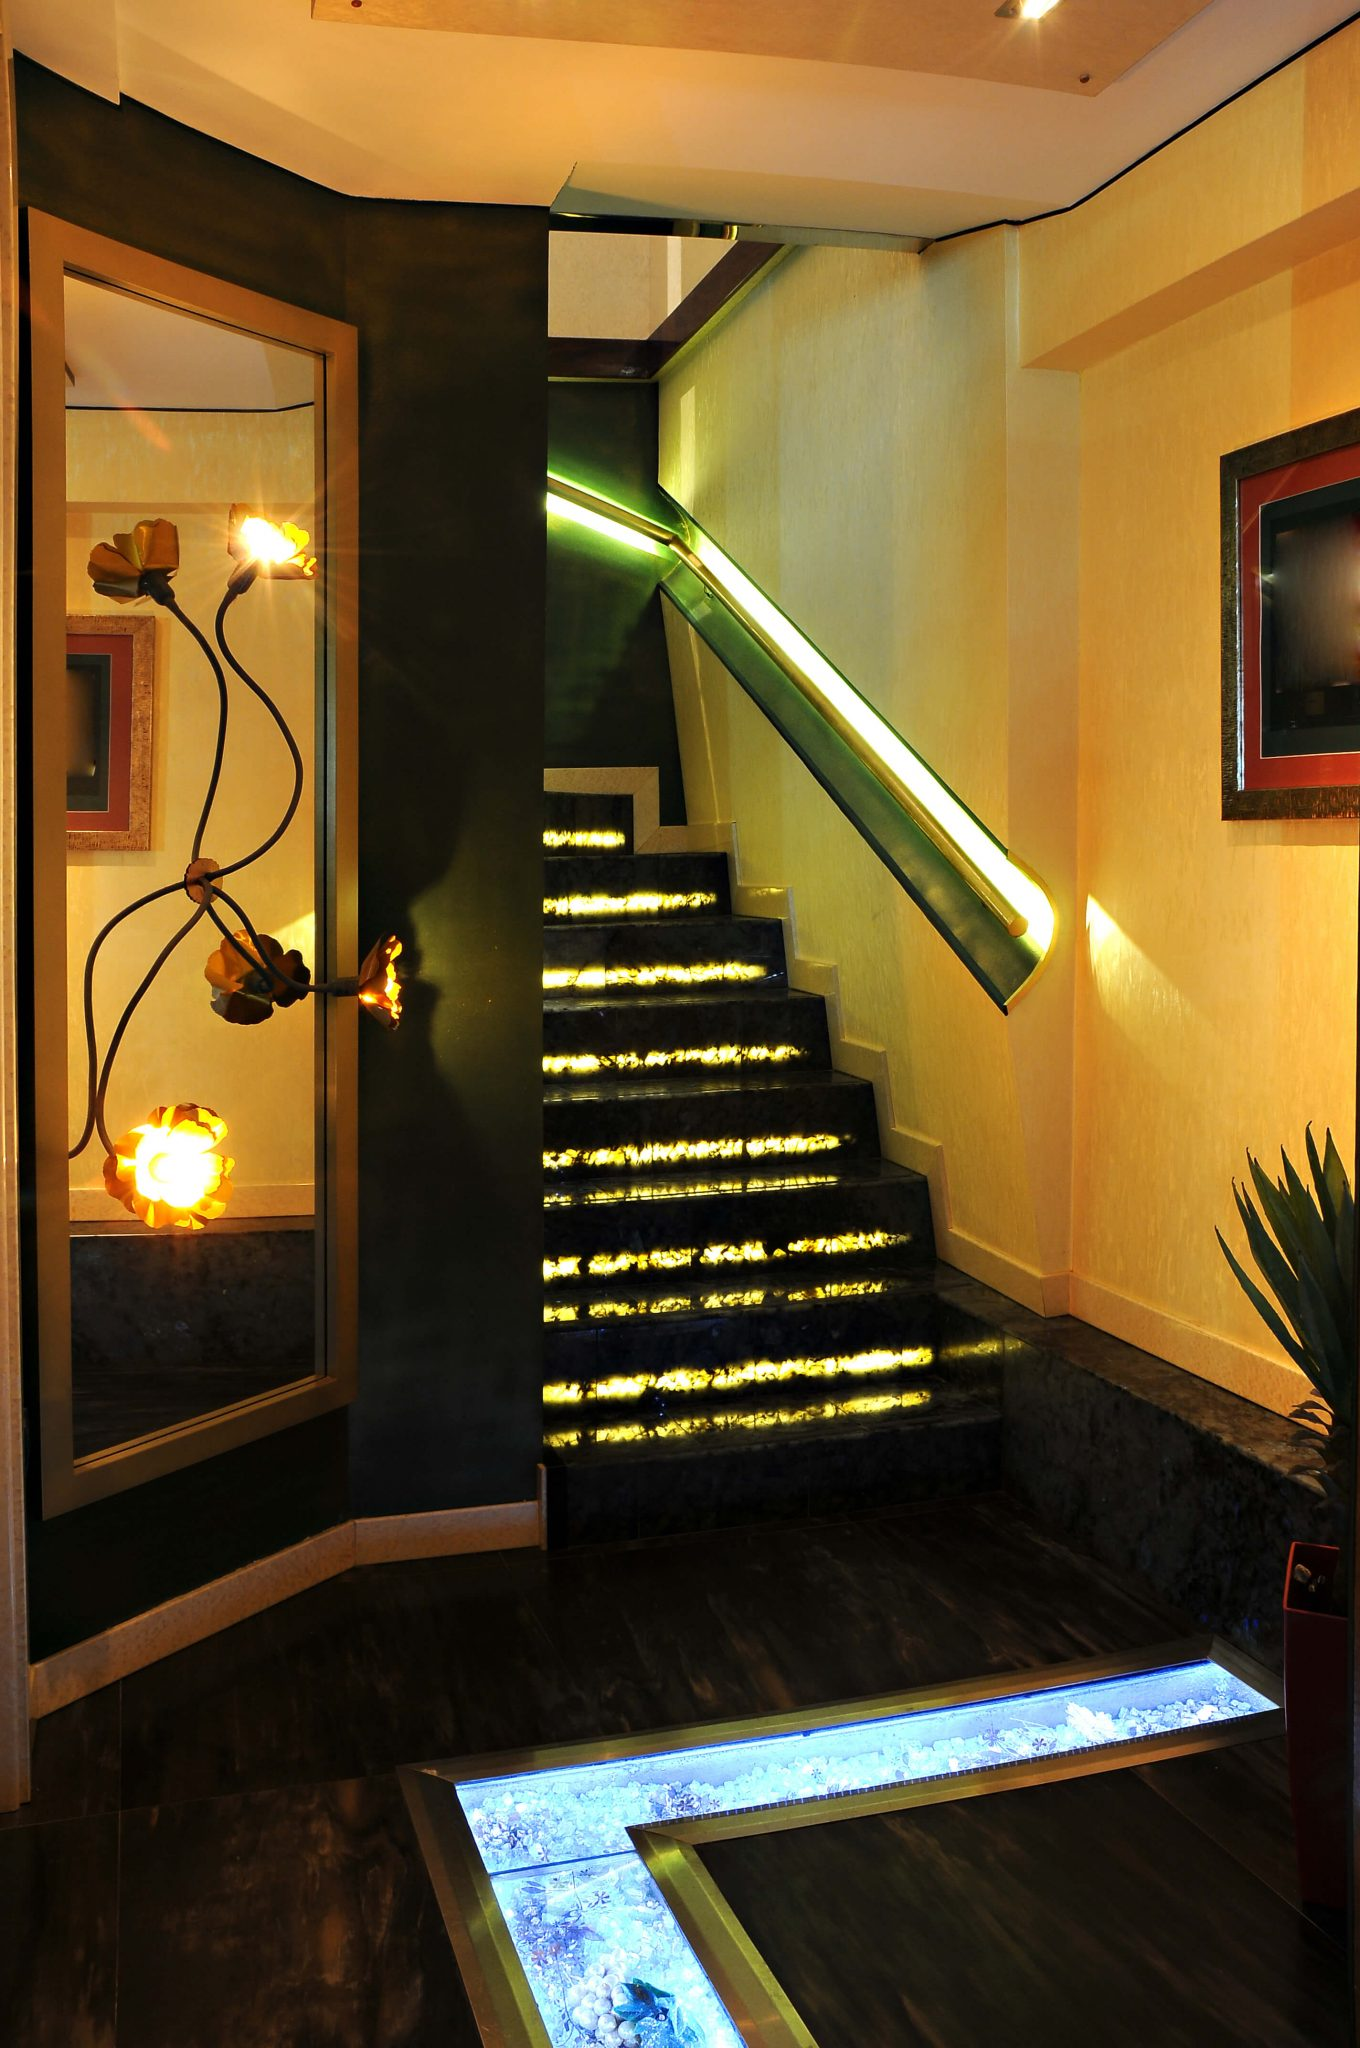 Dark stairs with under-step lighting and a lit railing